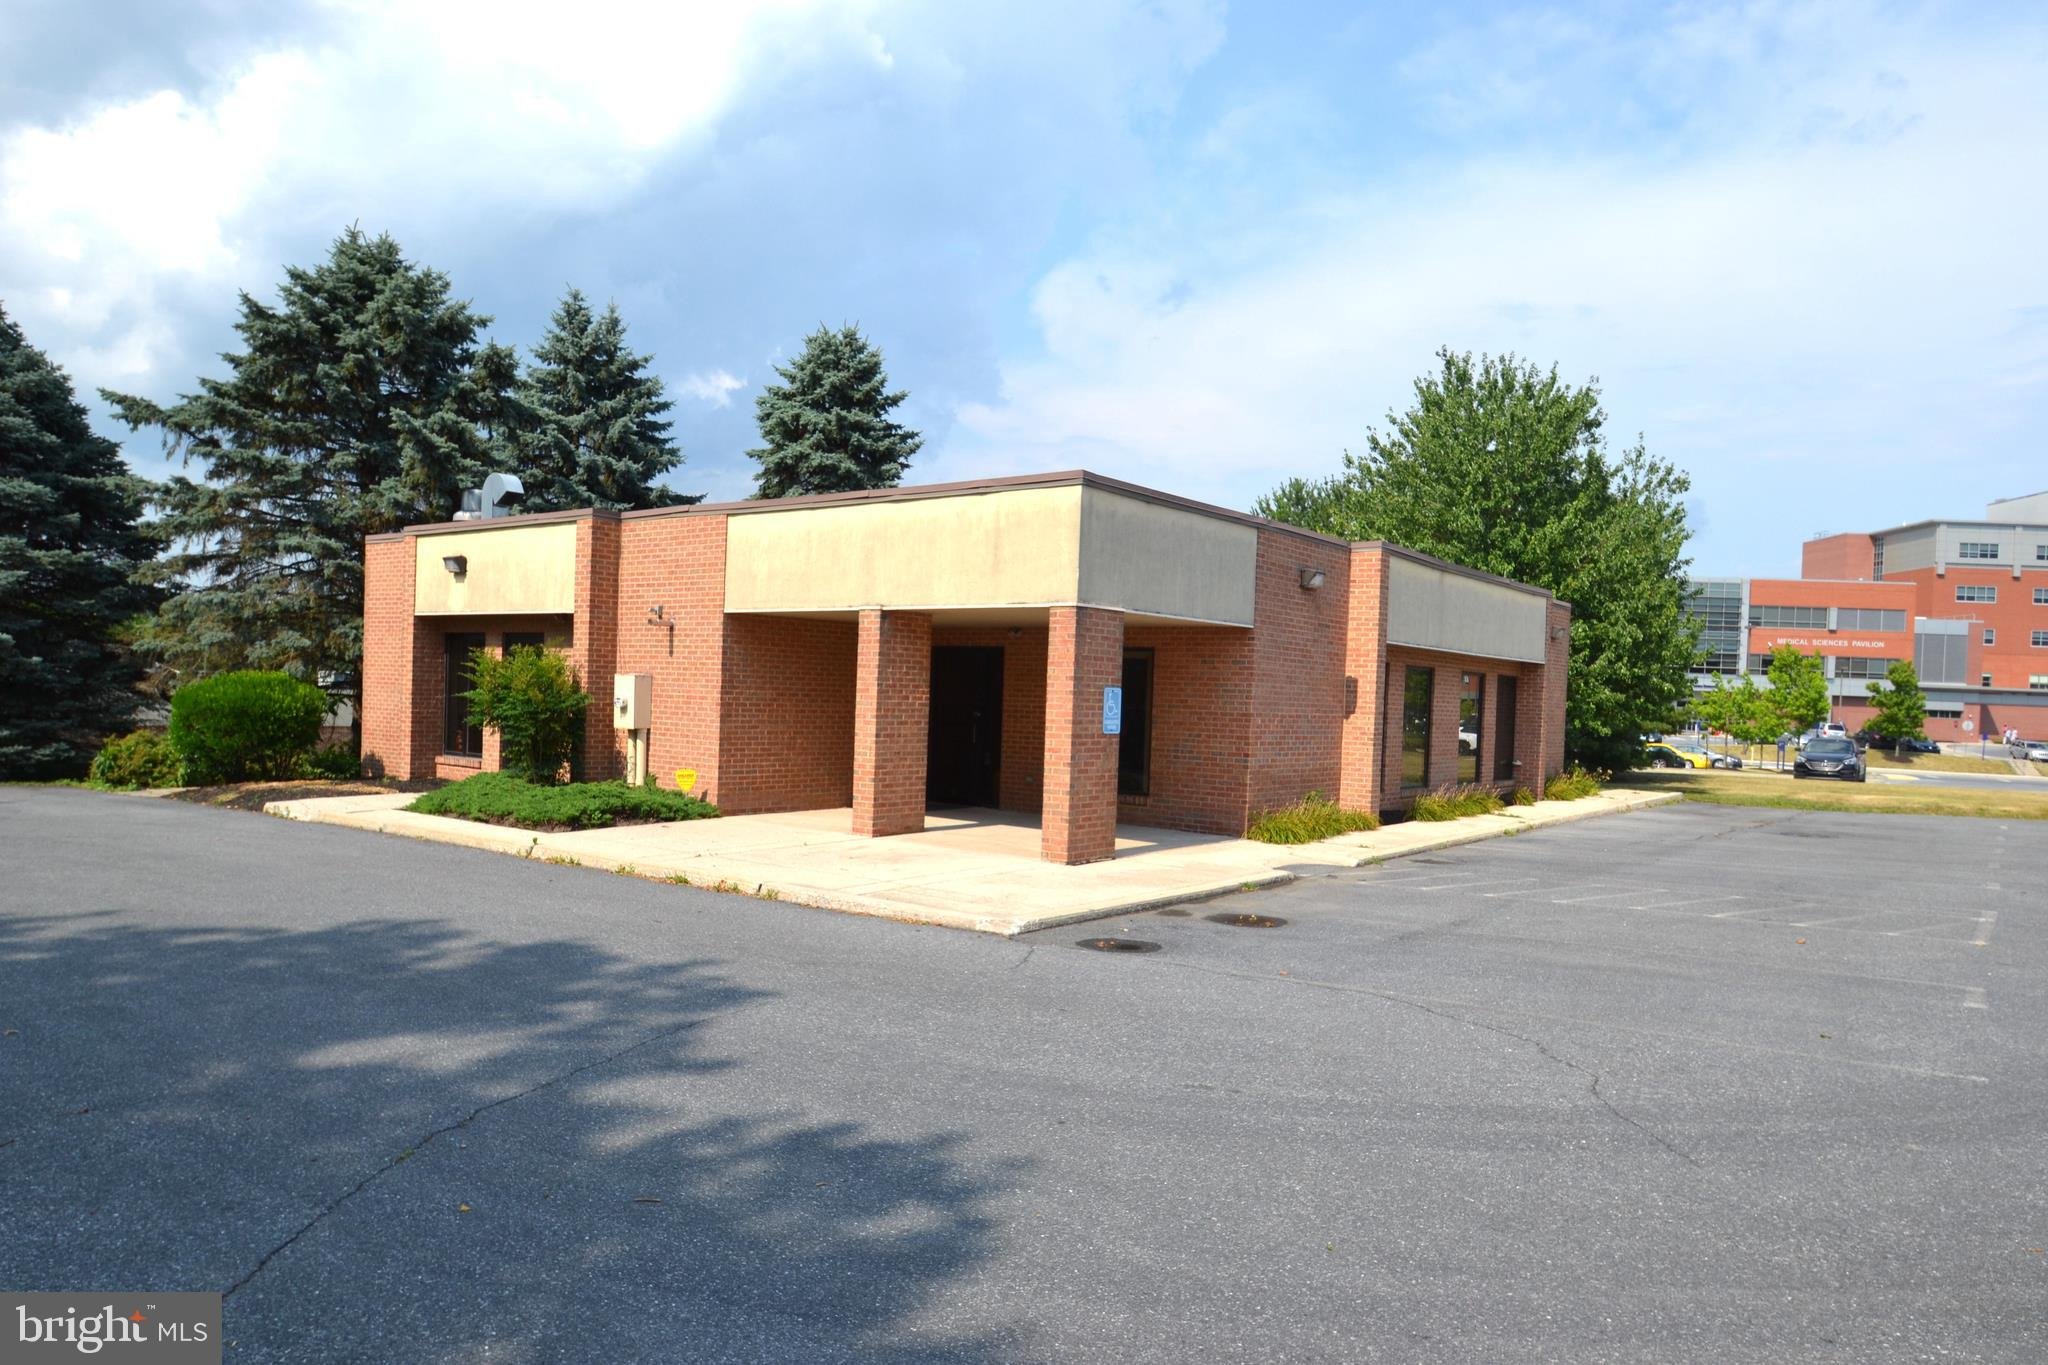 Location, Location, Location best describes this one-story building on a slap with approximately 2,316 square foot of finished space in popular Lower Paxton Township.  This highly desirable location on .74 acres is surrounded by many medical institutions and other commercial facilities with UPMC Pinnacle Community Osteopathic Hospital adjoining this property in rear. With a total of 7 offices, staff lounge, waiting room, 3 half bathrooms, mechanical room, 15 + parking spaces and possible room to grow this practical footprint offers many possibilities. The real estate ONLY is currently being offered for sale at an amazing price of only $595,000 but seller will also entertain possible lease for whole/partial building.  This building is currently being used by a Dental Laboratory which is not included in the sale, but would be possibly interested in leasing 2-3 offices.  Zoning for this property is IN.   Feel free to contact David Giovanniello with For Sale By Owner Plus, Realtors with any further questions or concerns.